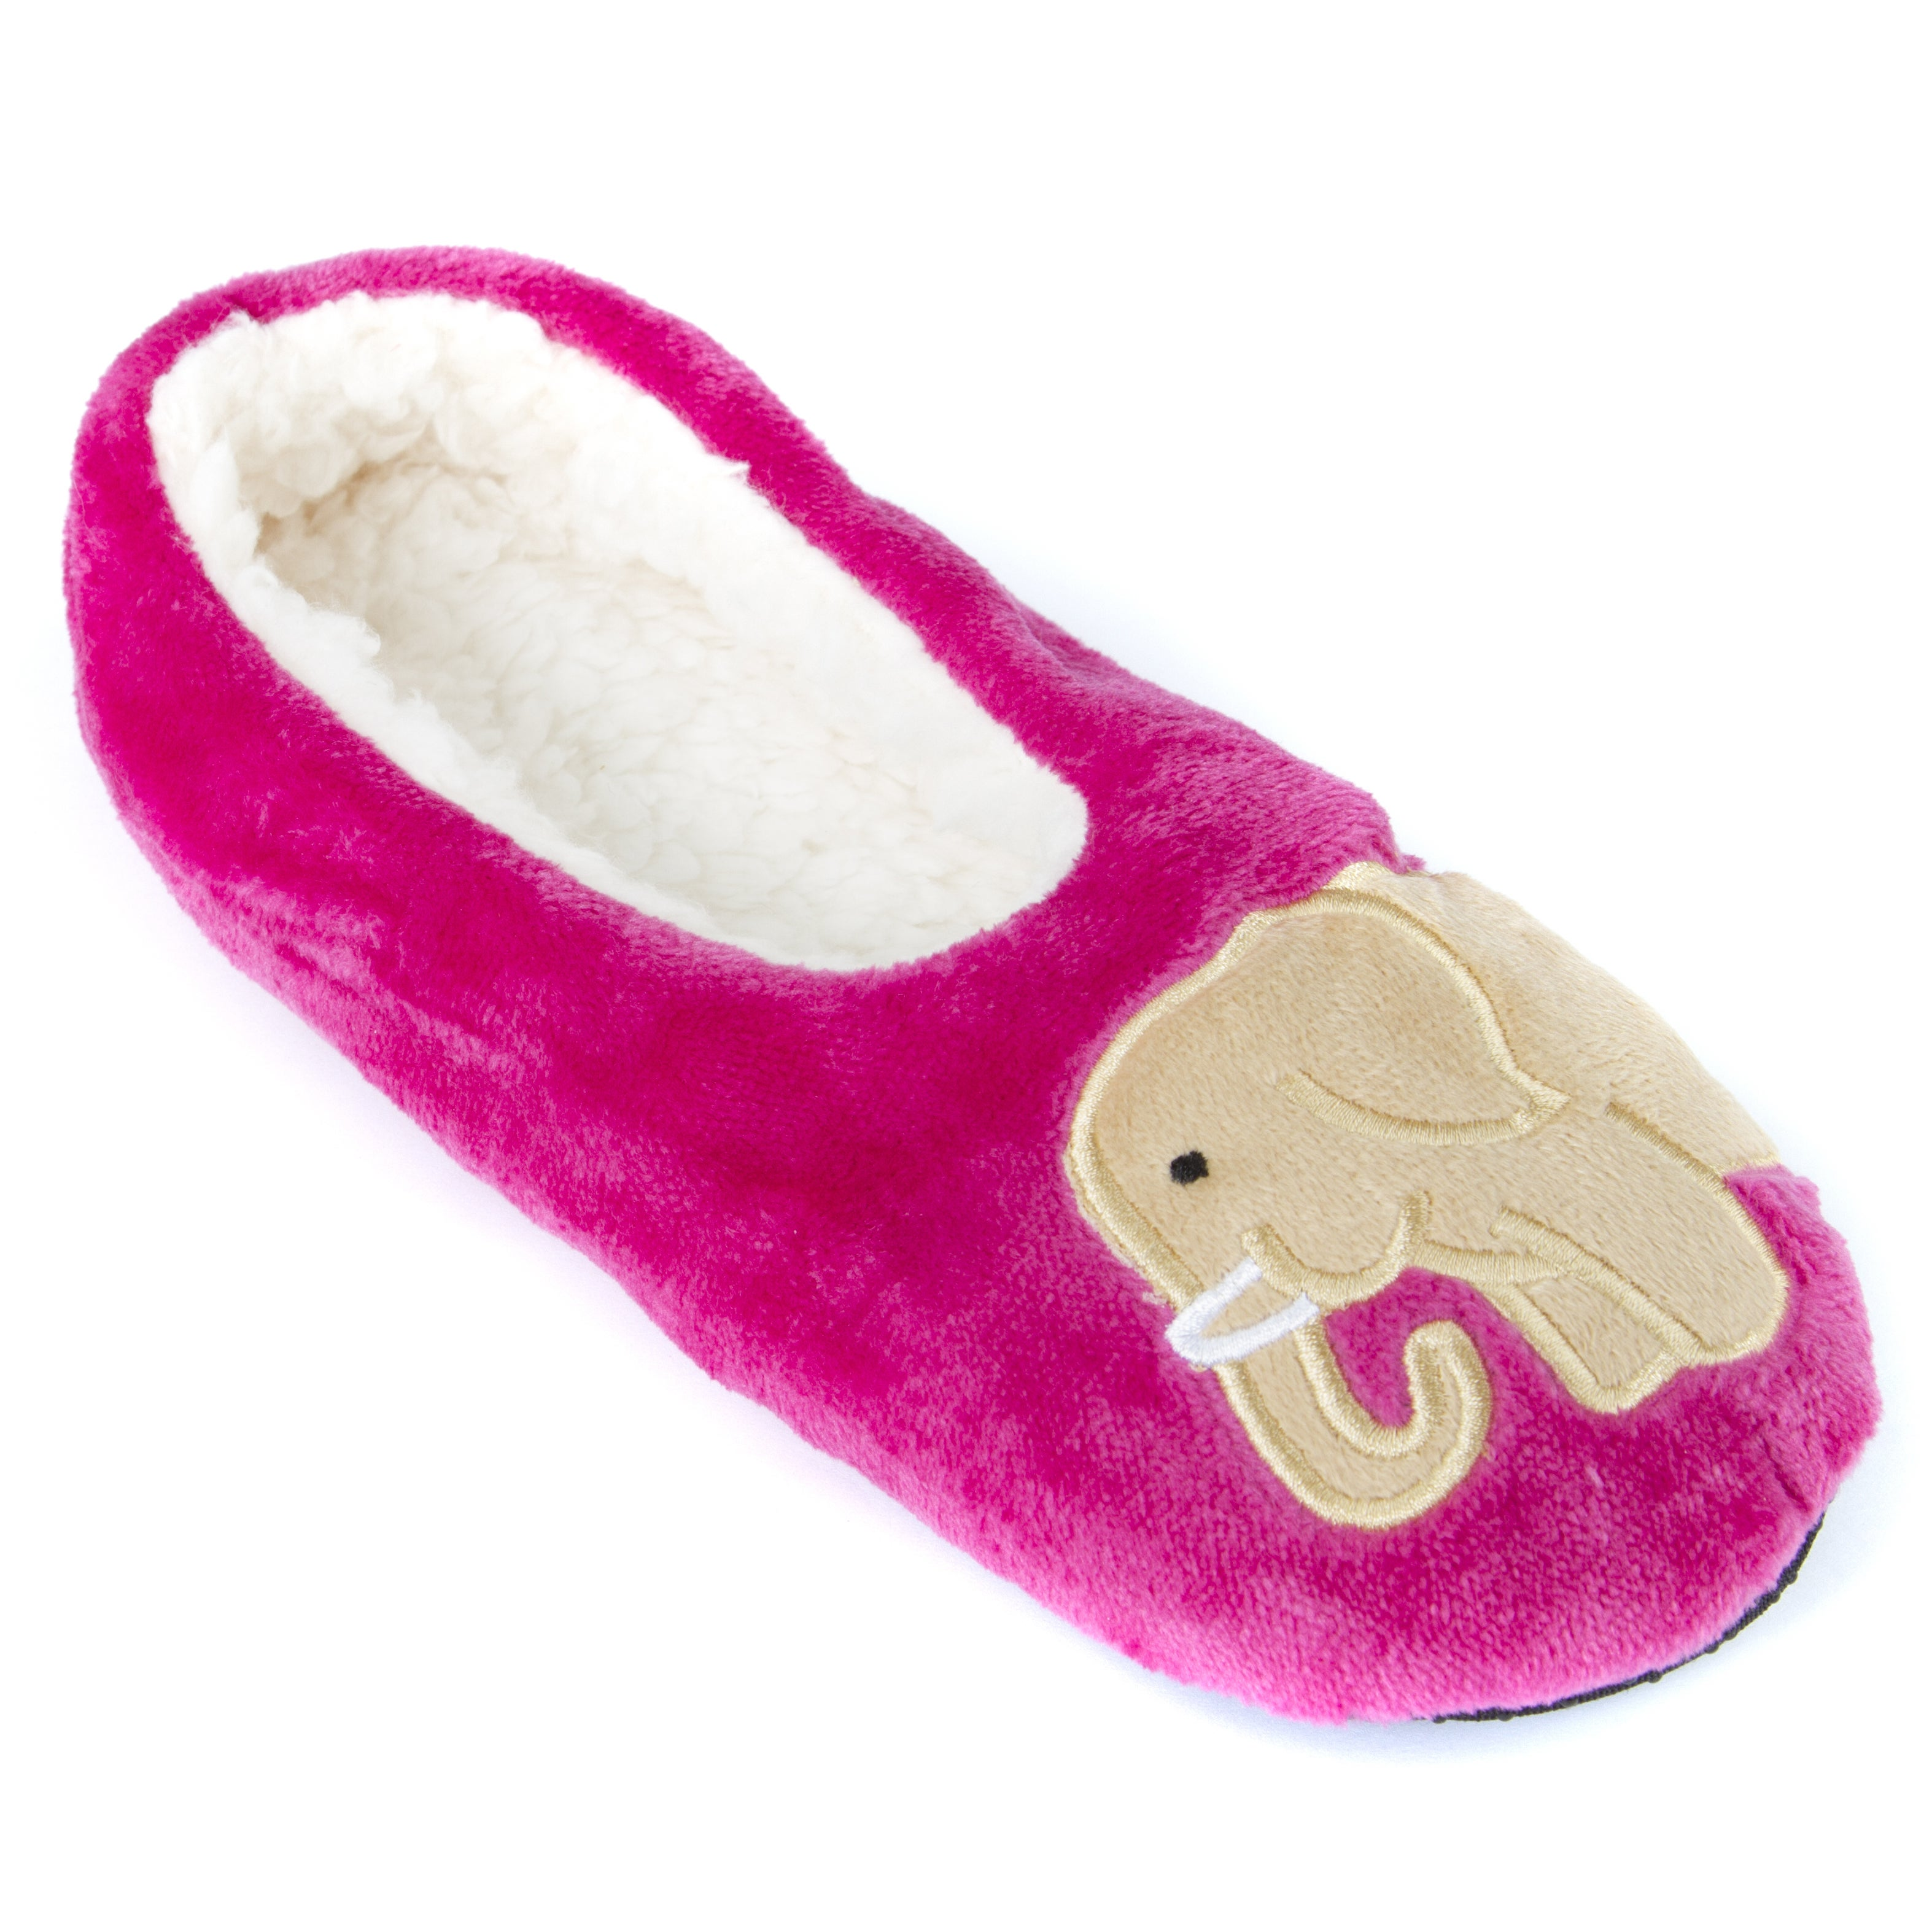 6e635b162b81 Shop Leisureland Women s Fleece Lined Cozy Slippers Embroidery Elephent -  Free Shipping On Orders Over  45 - Overstock - 10907713